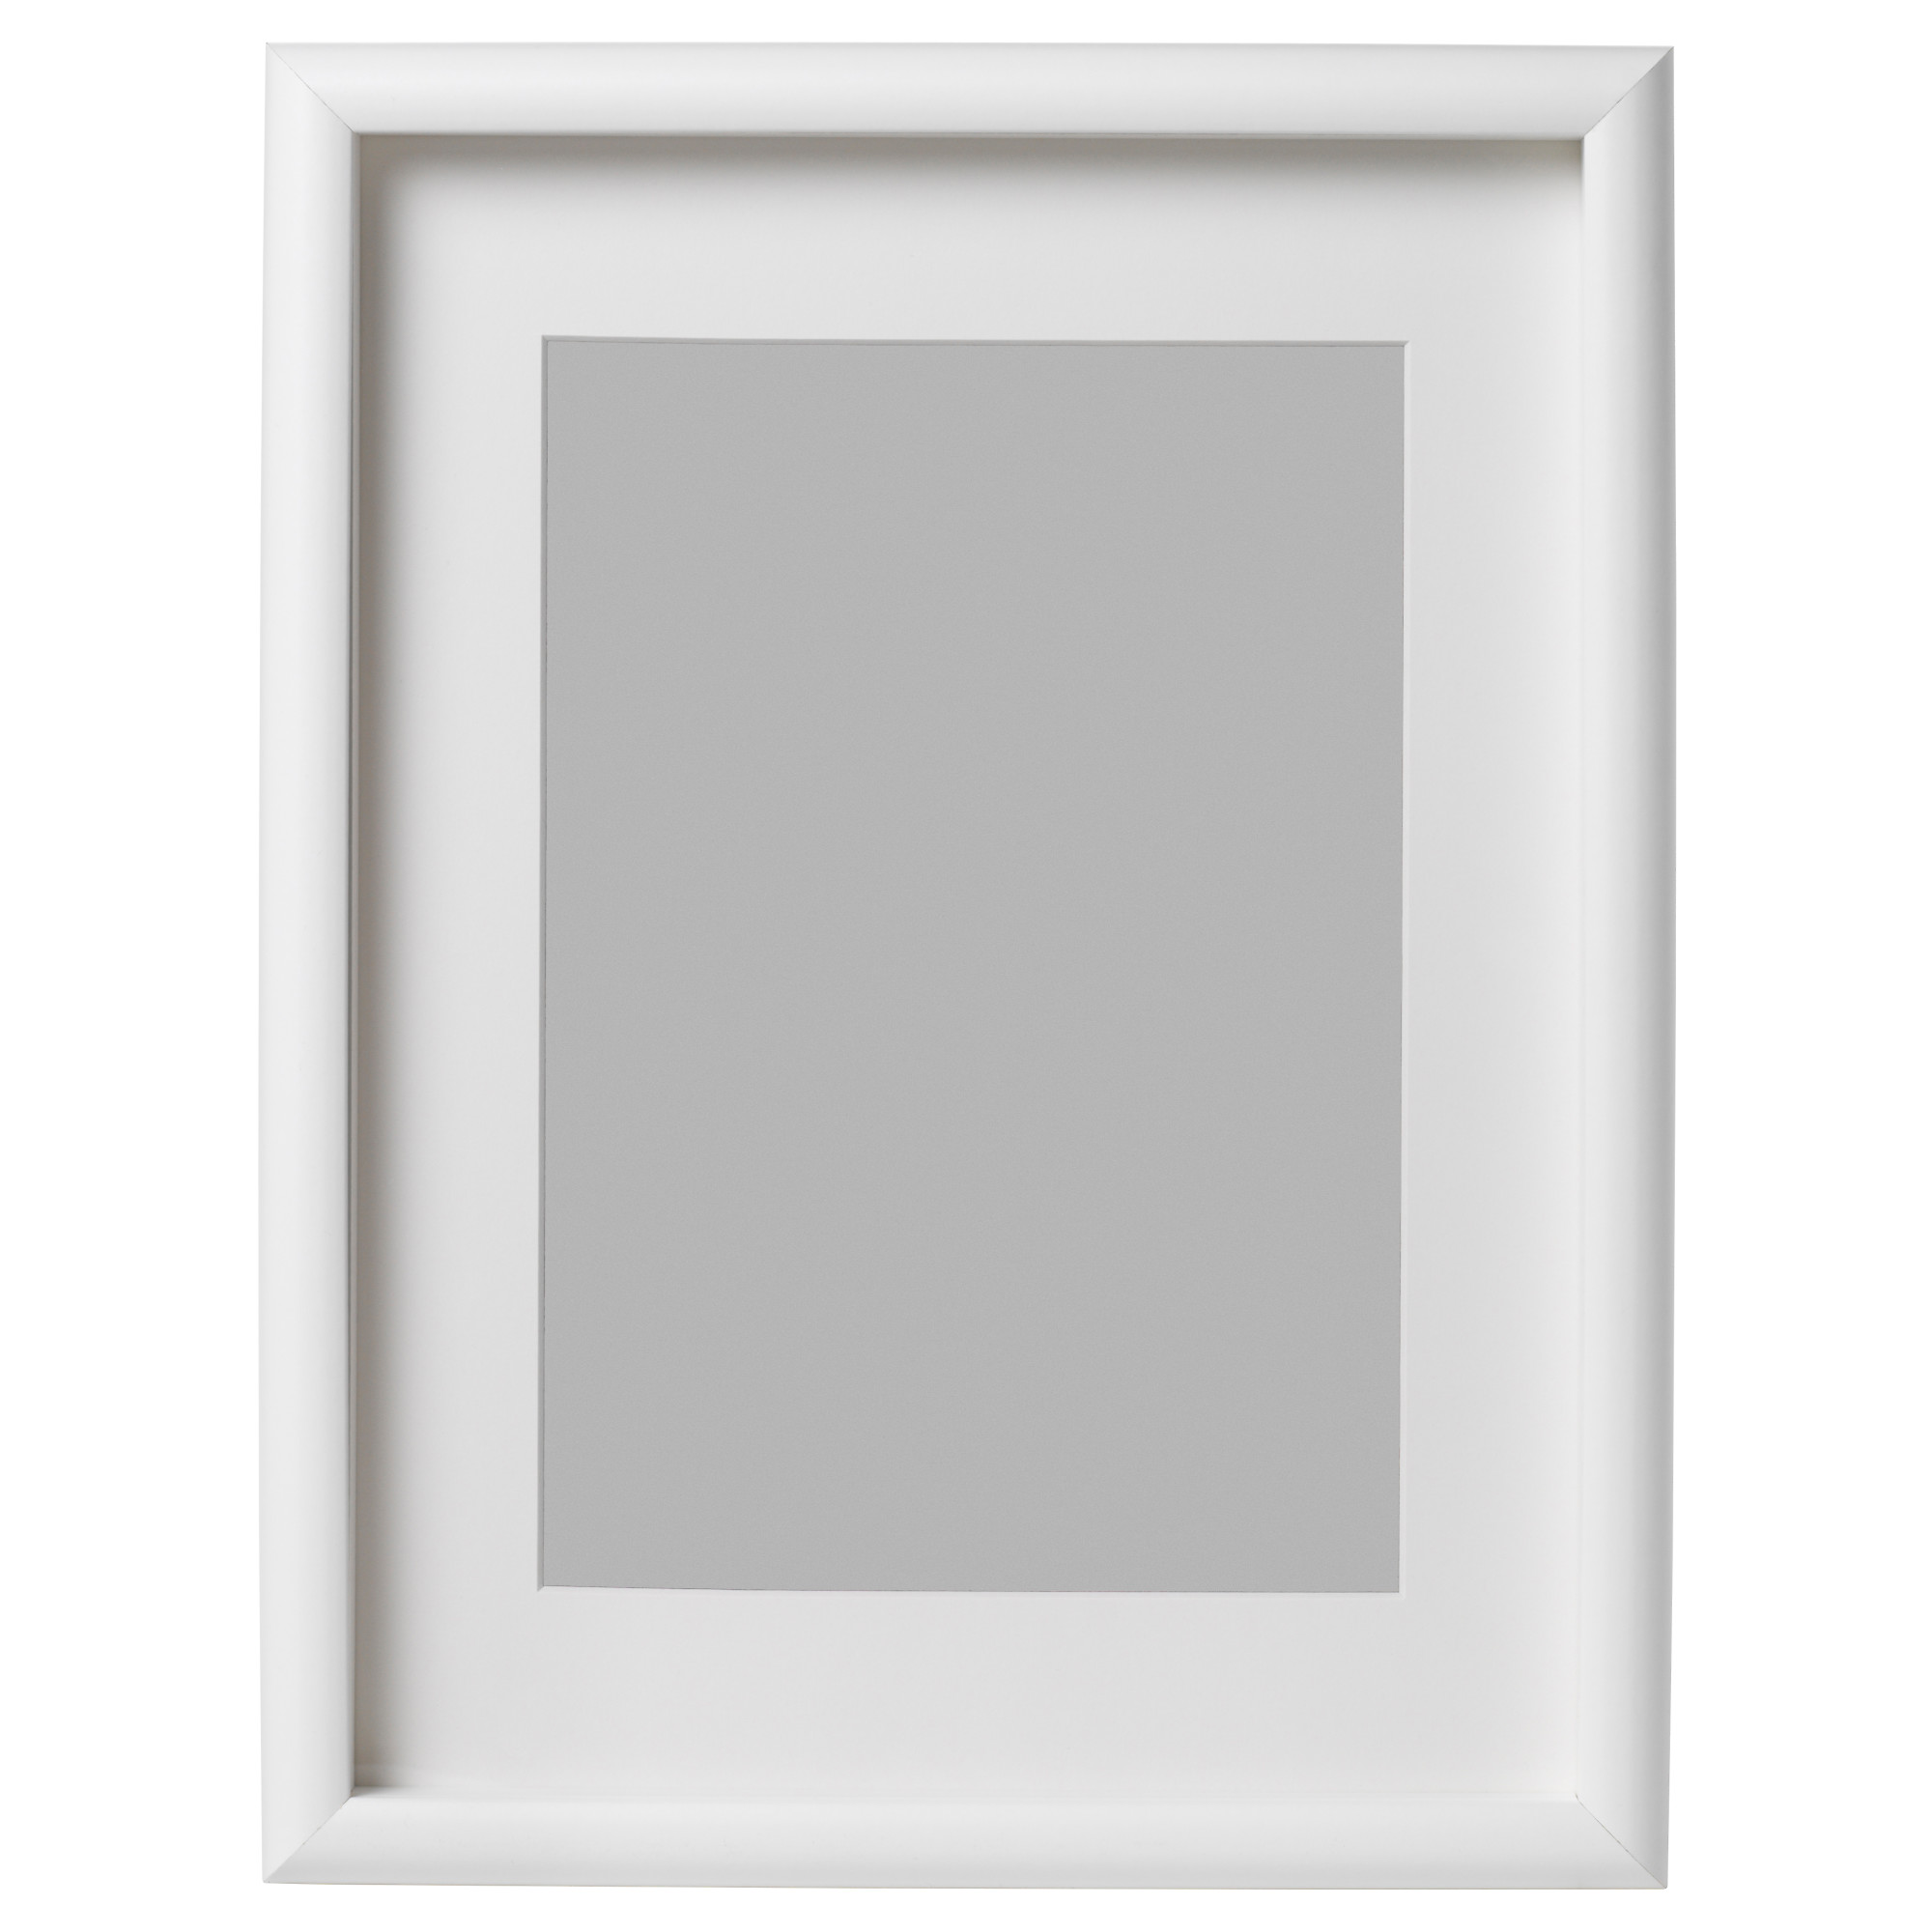 Modern White Floating Ledge for Photos Pictures and